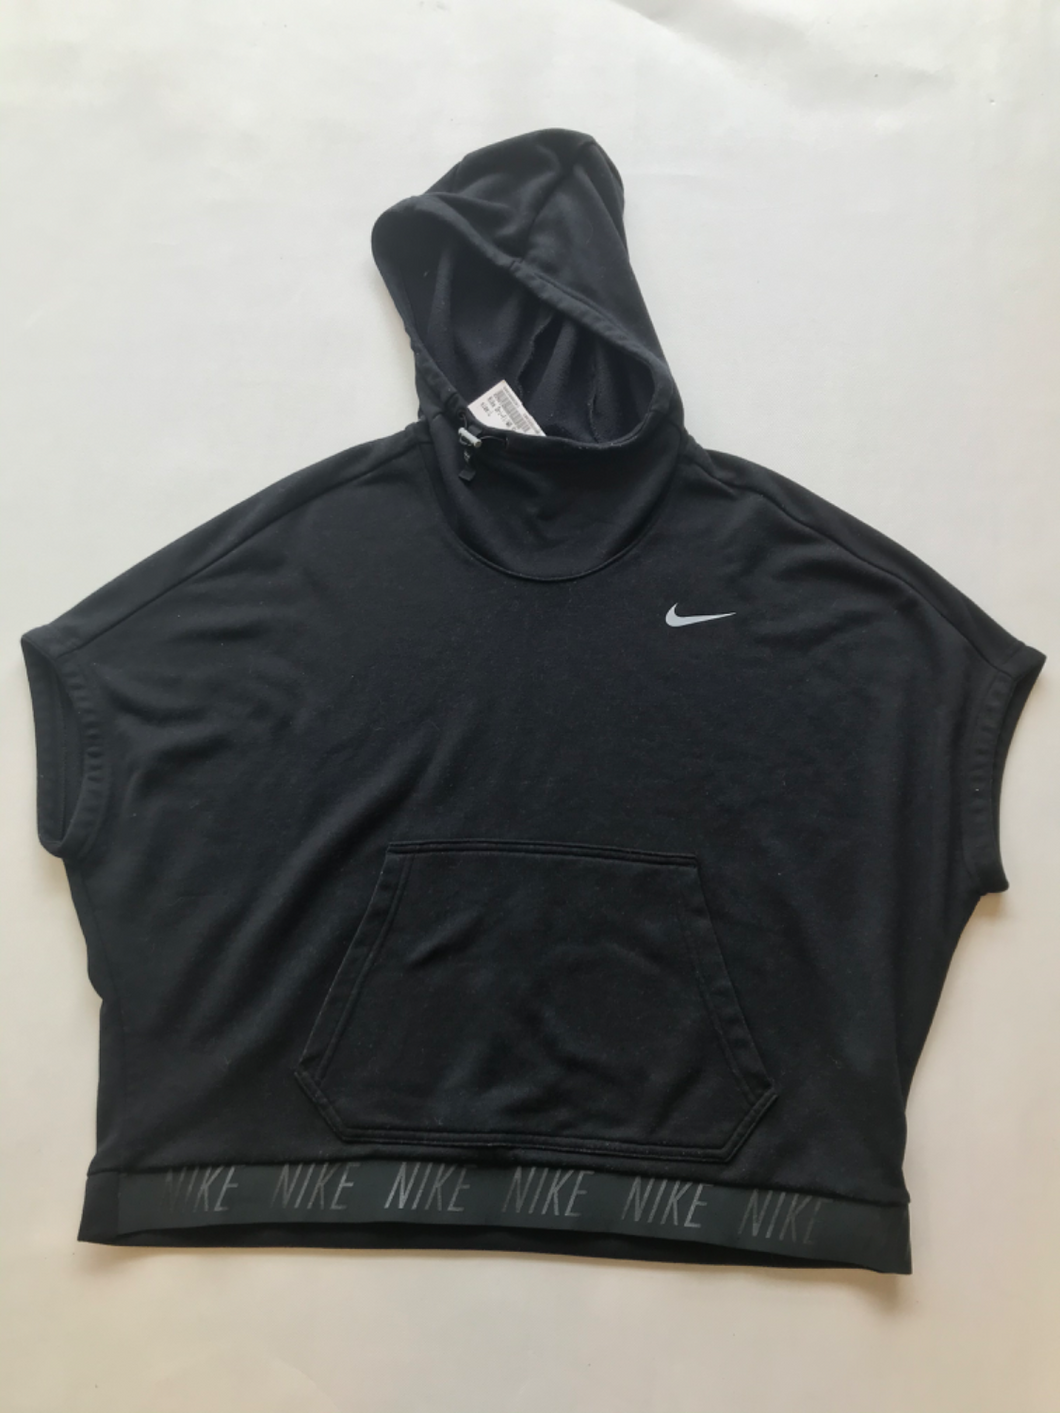 Nike Dri Fit Athletic Top Size Large